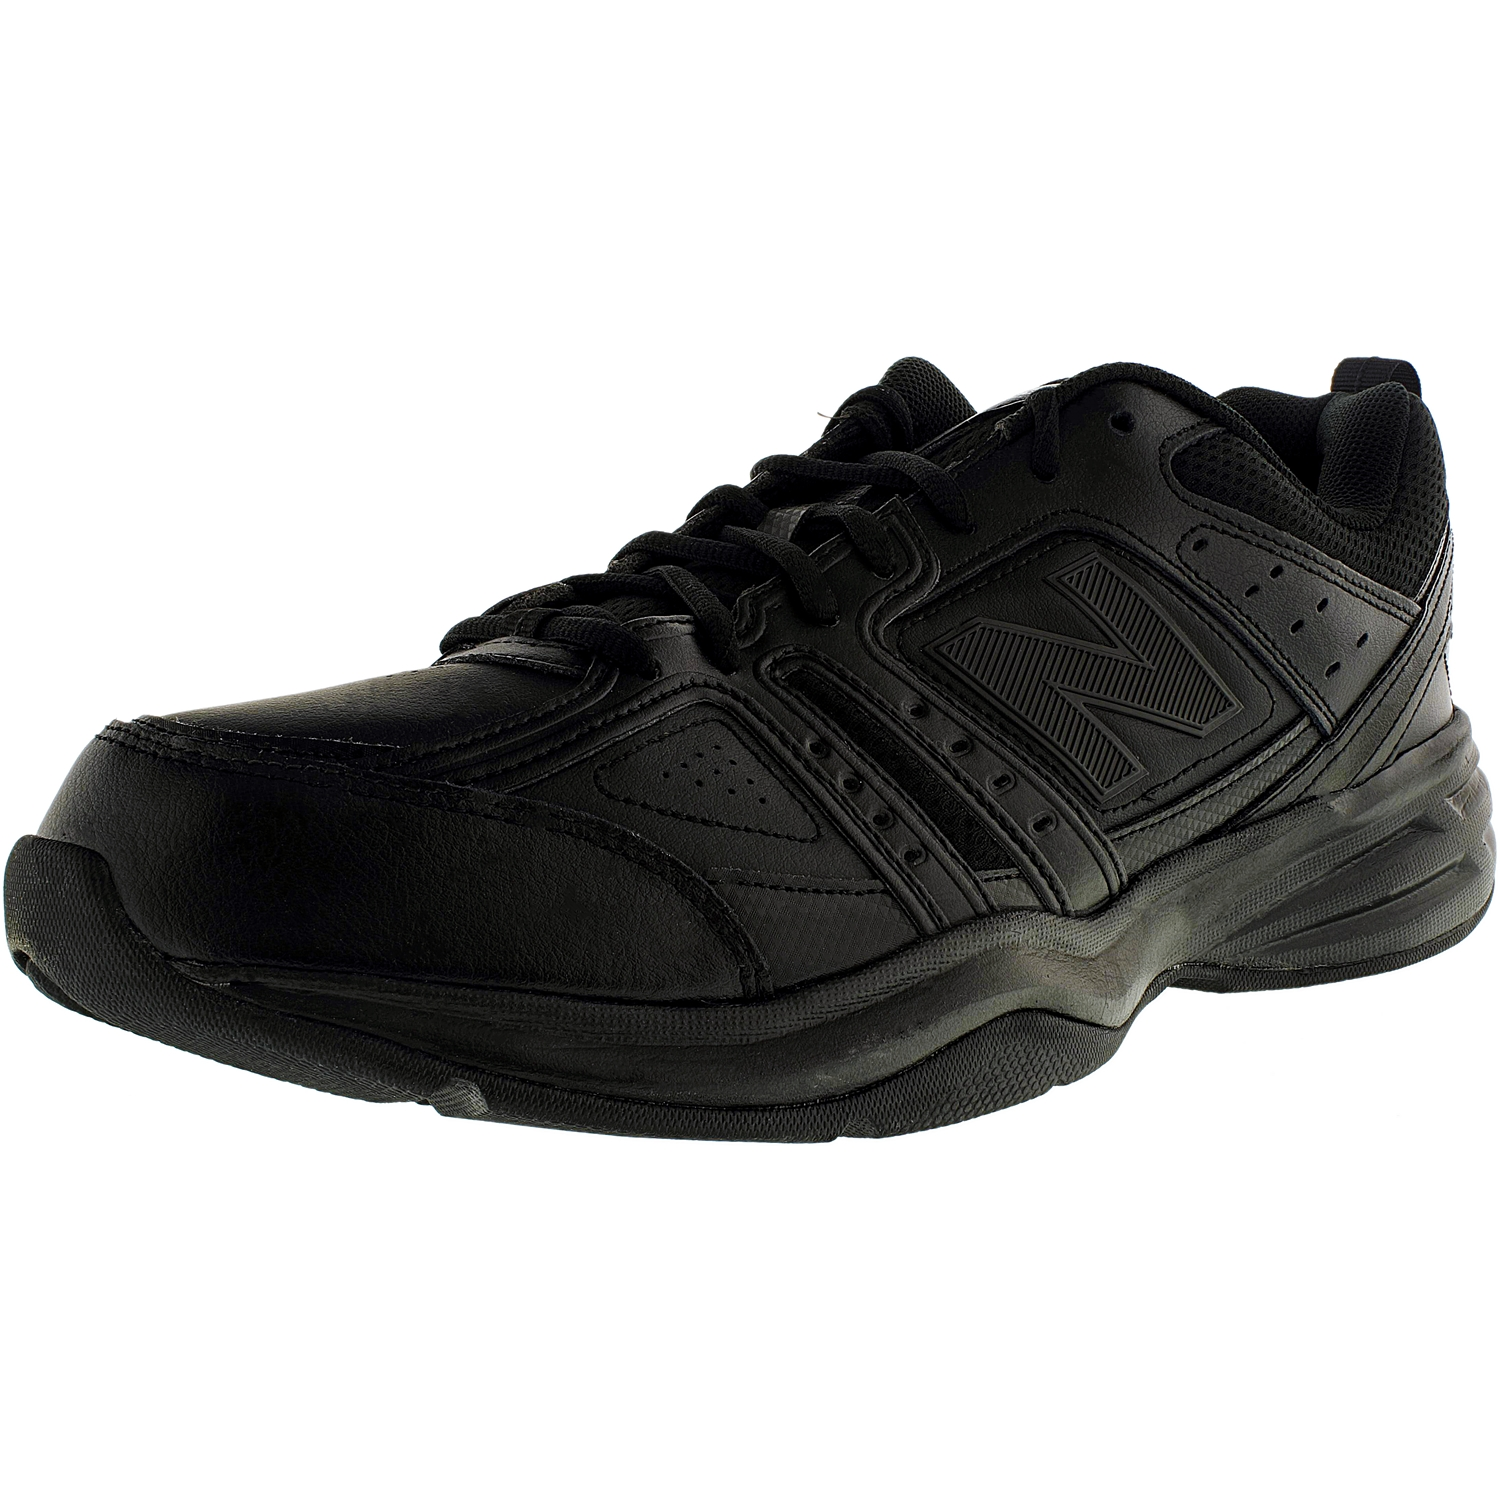 New Balance Men's Mx409 Ankle-High Synthetic Walking Shoe by New Balance